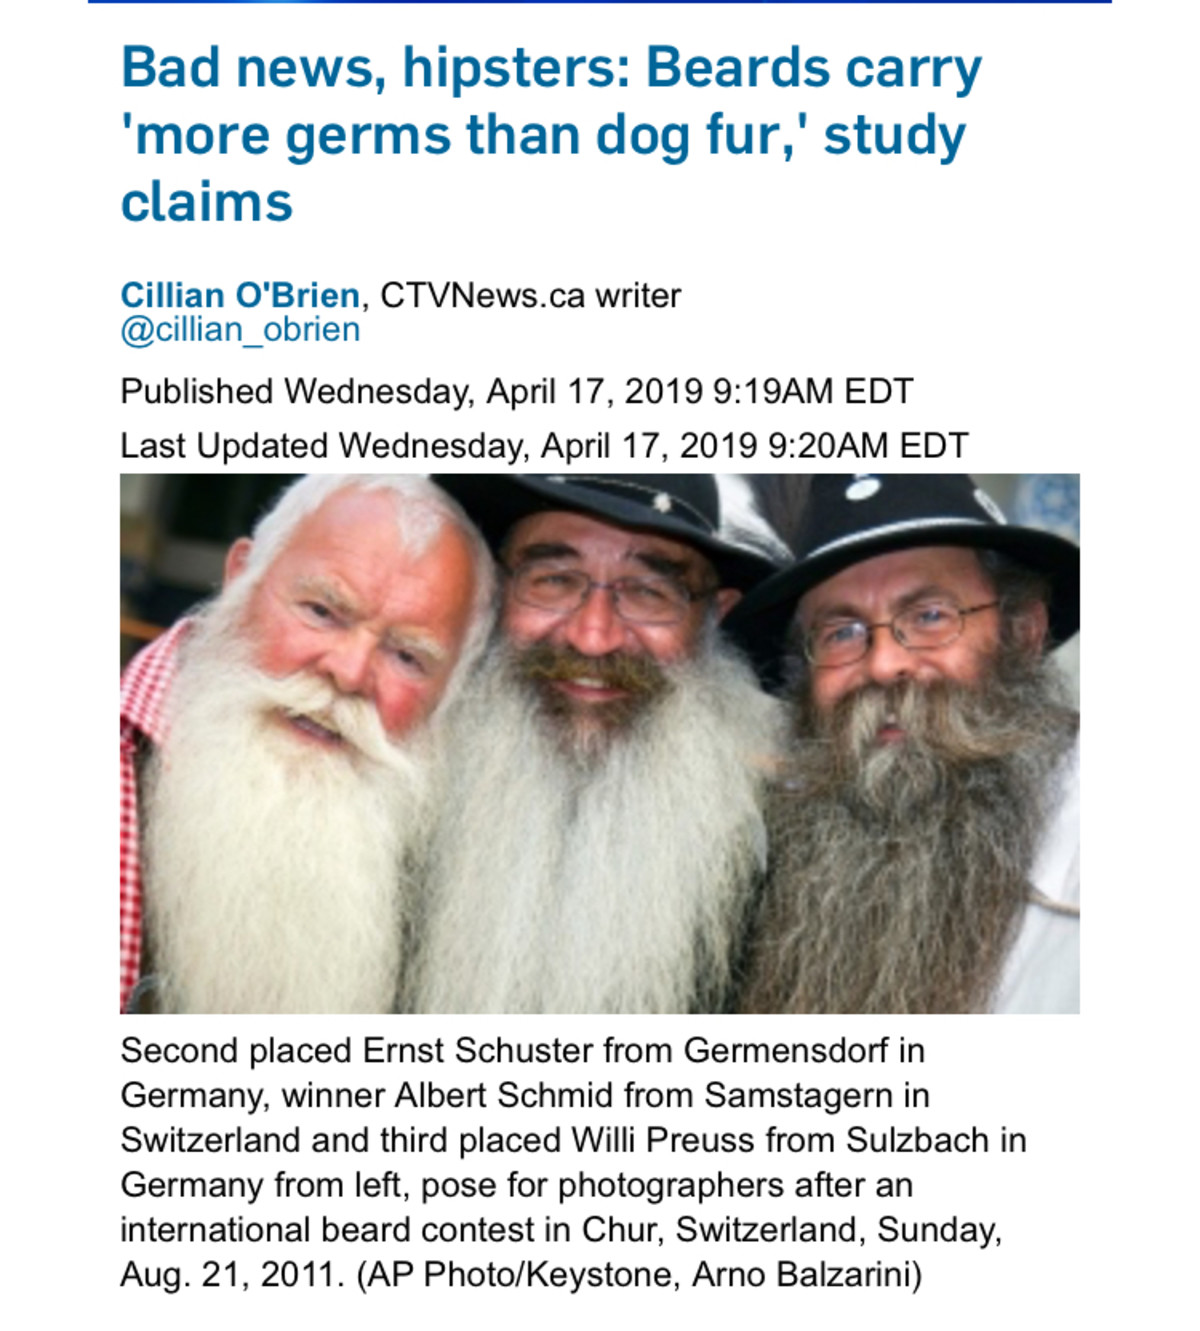 Read description. Bad news feminazis, excessive amount of armpit and pubic hair also carry more germs than dog fur.. Hipsters overall carry more germs than most animals, feminazis are like those rats that plagued Europe